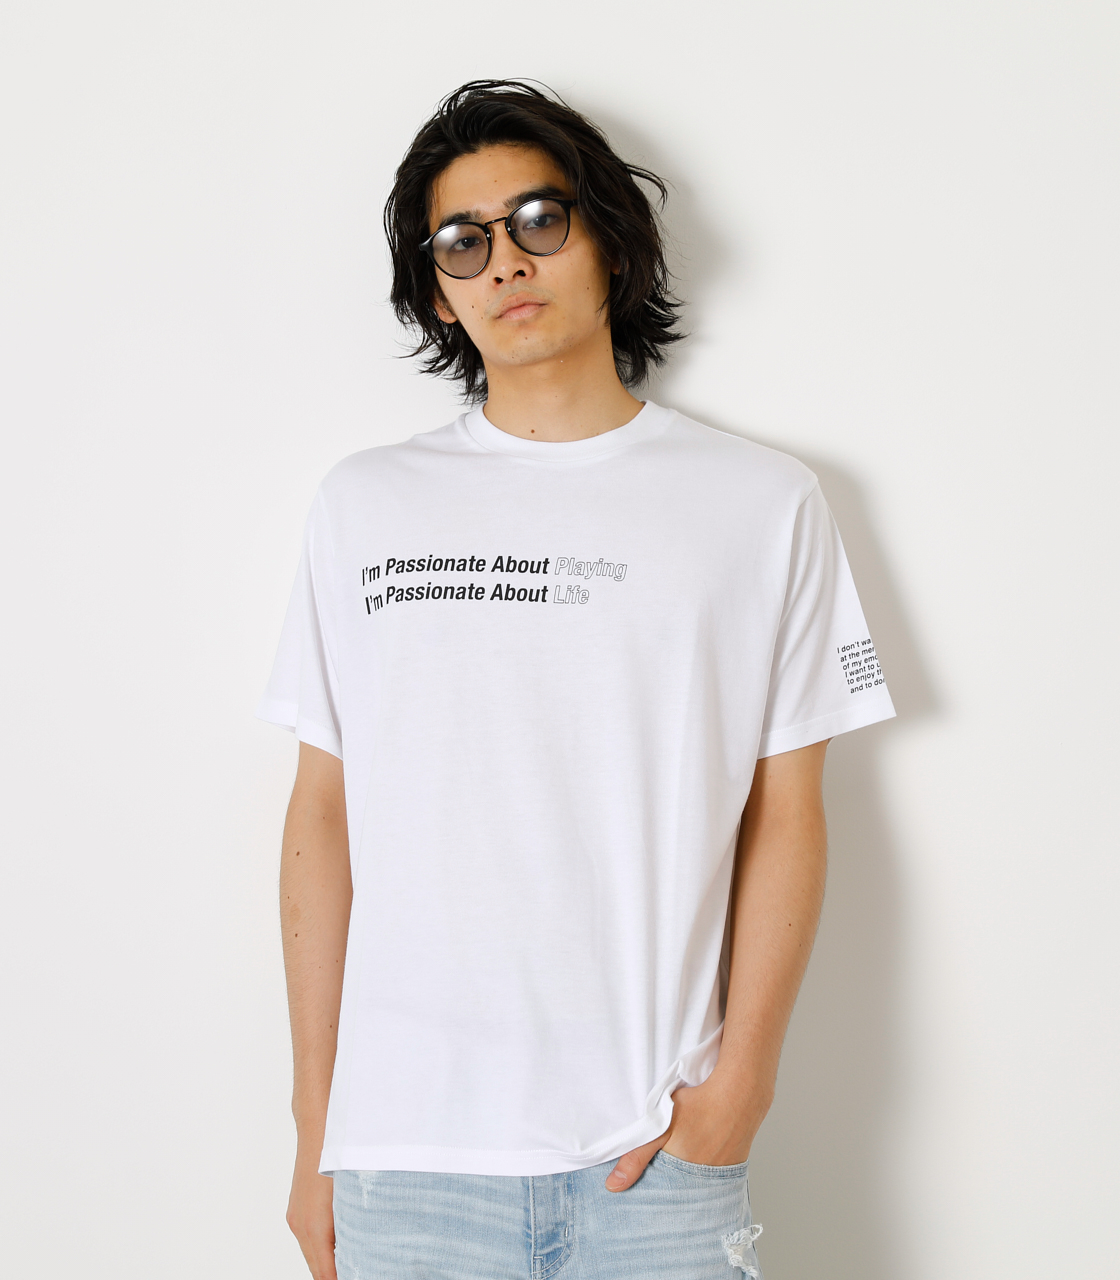 PASSIONATE ABOUT TEE/パッショネイトアバウトTシャツ 詳細画像 WHT 1